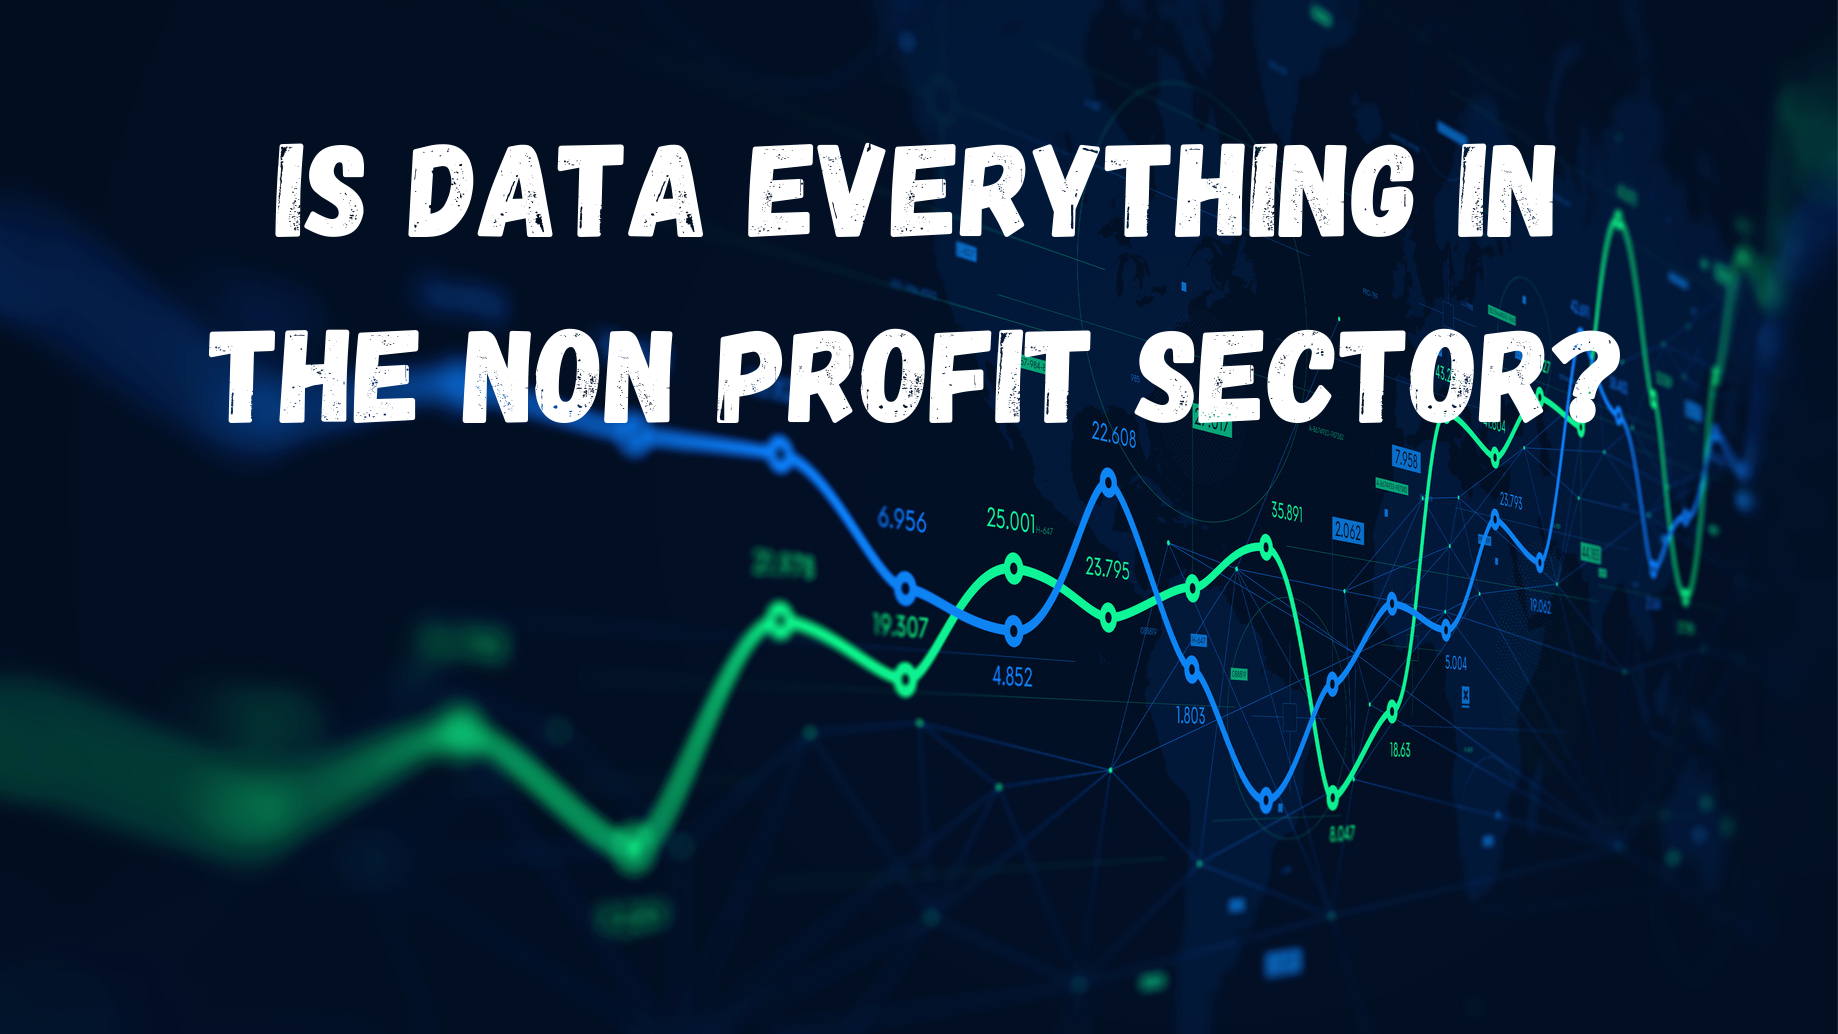 Is Data Everything in the Non Profit Sector